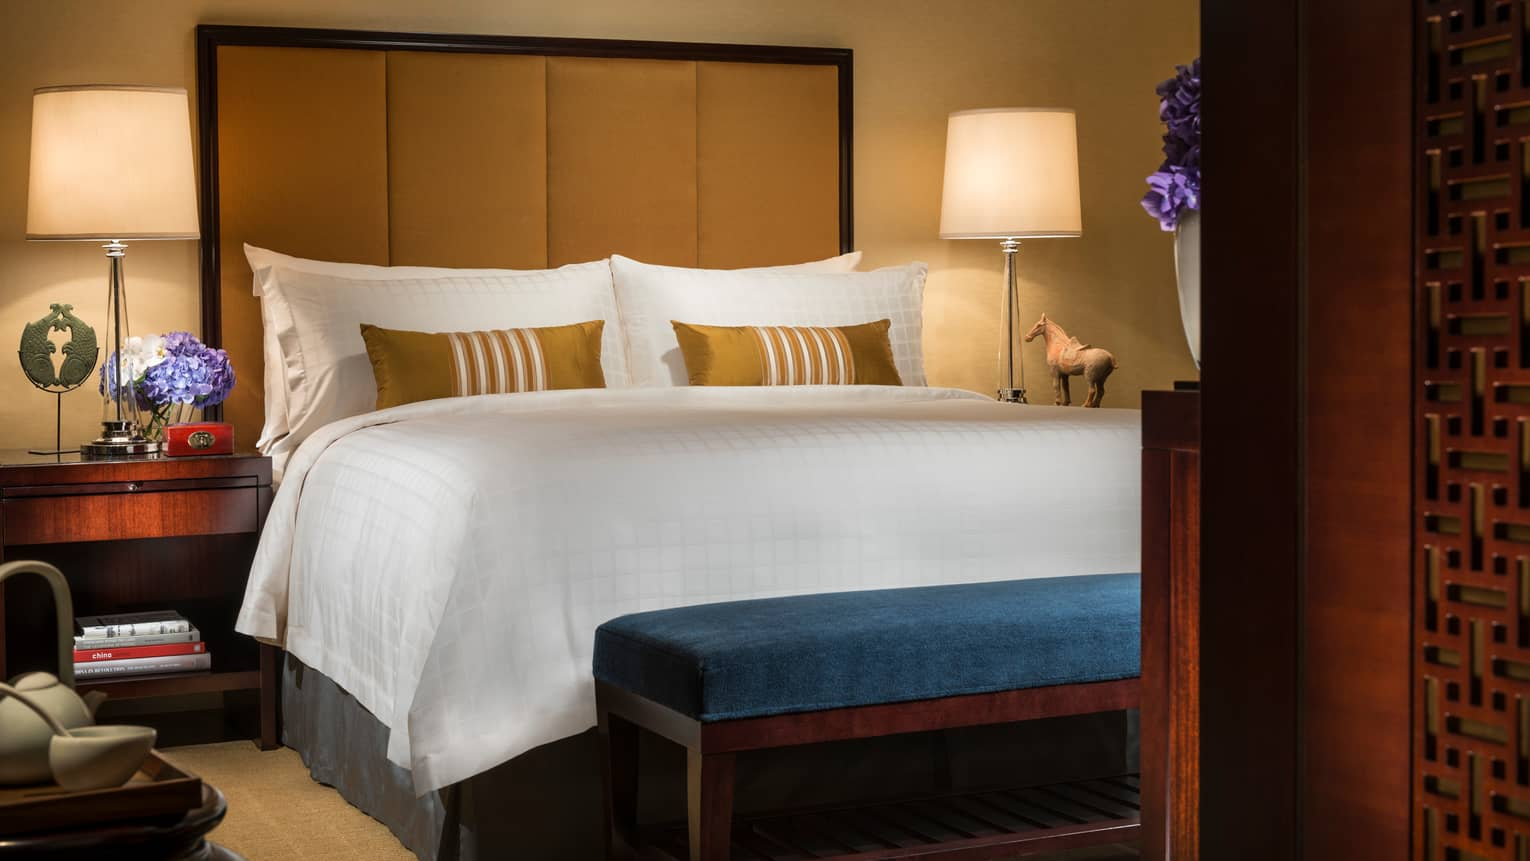 Deluxe Room bed with tall padded headboard, small blue bench at foot, sculptures and art on nightstand